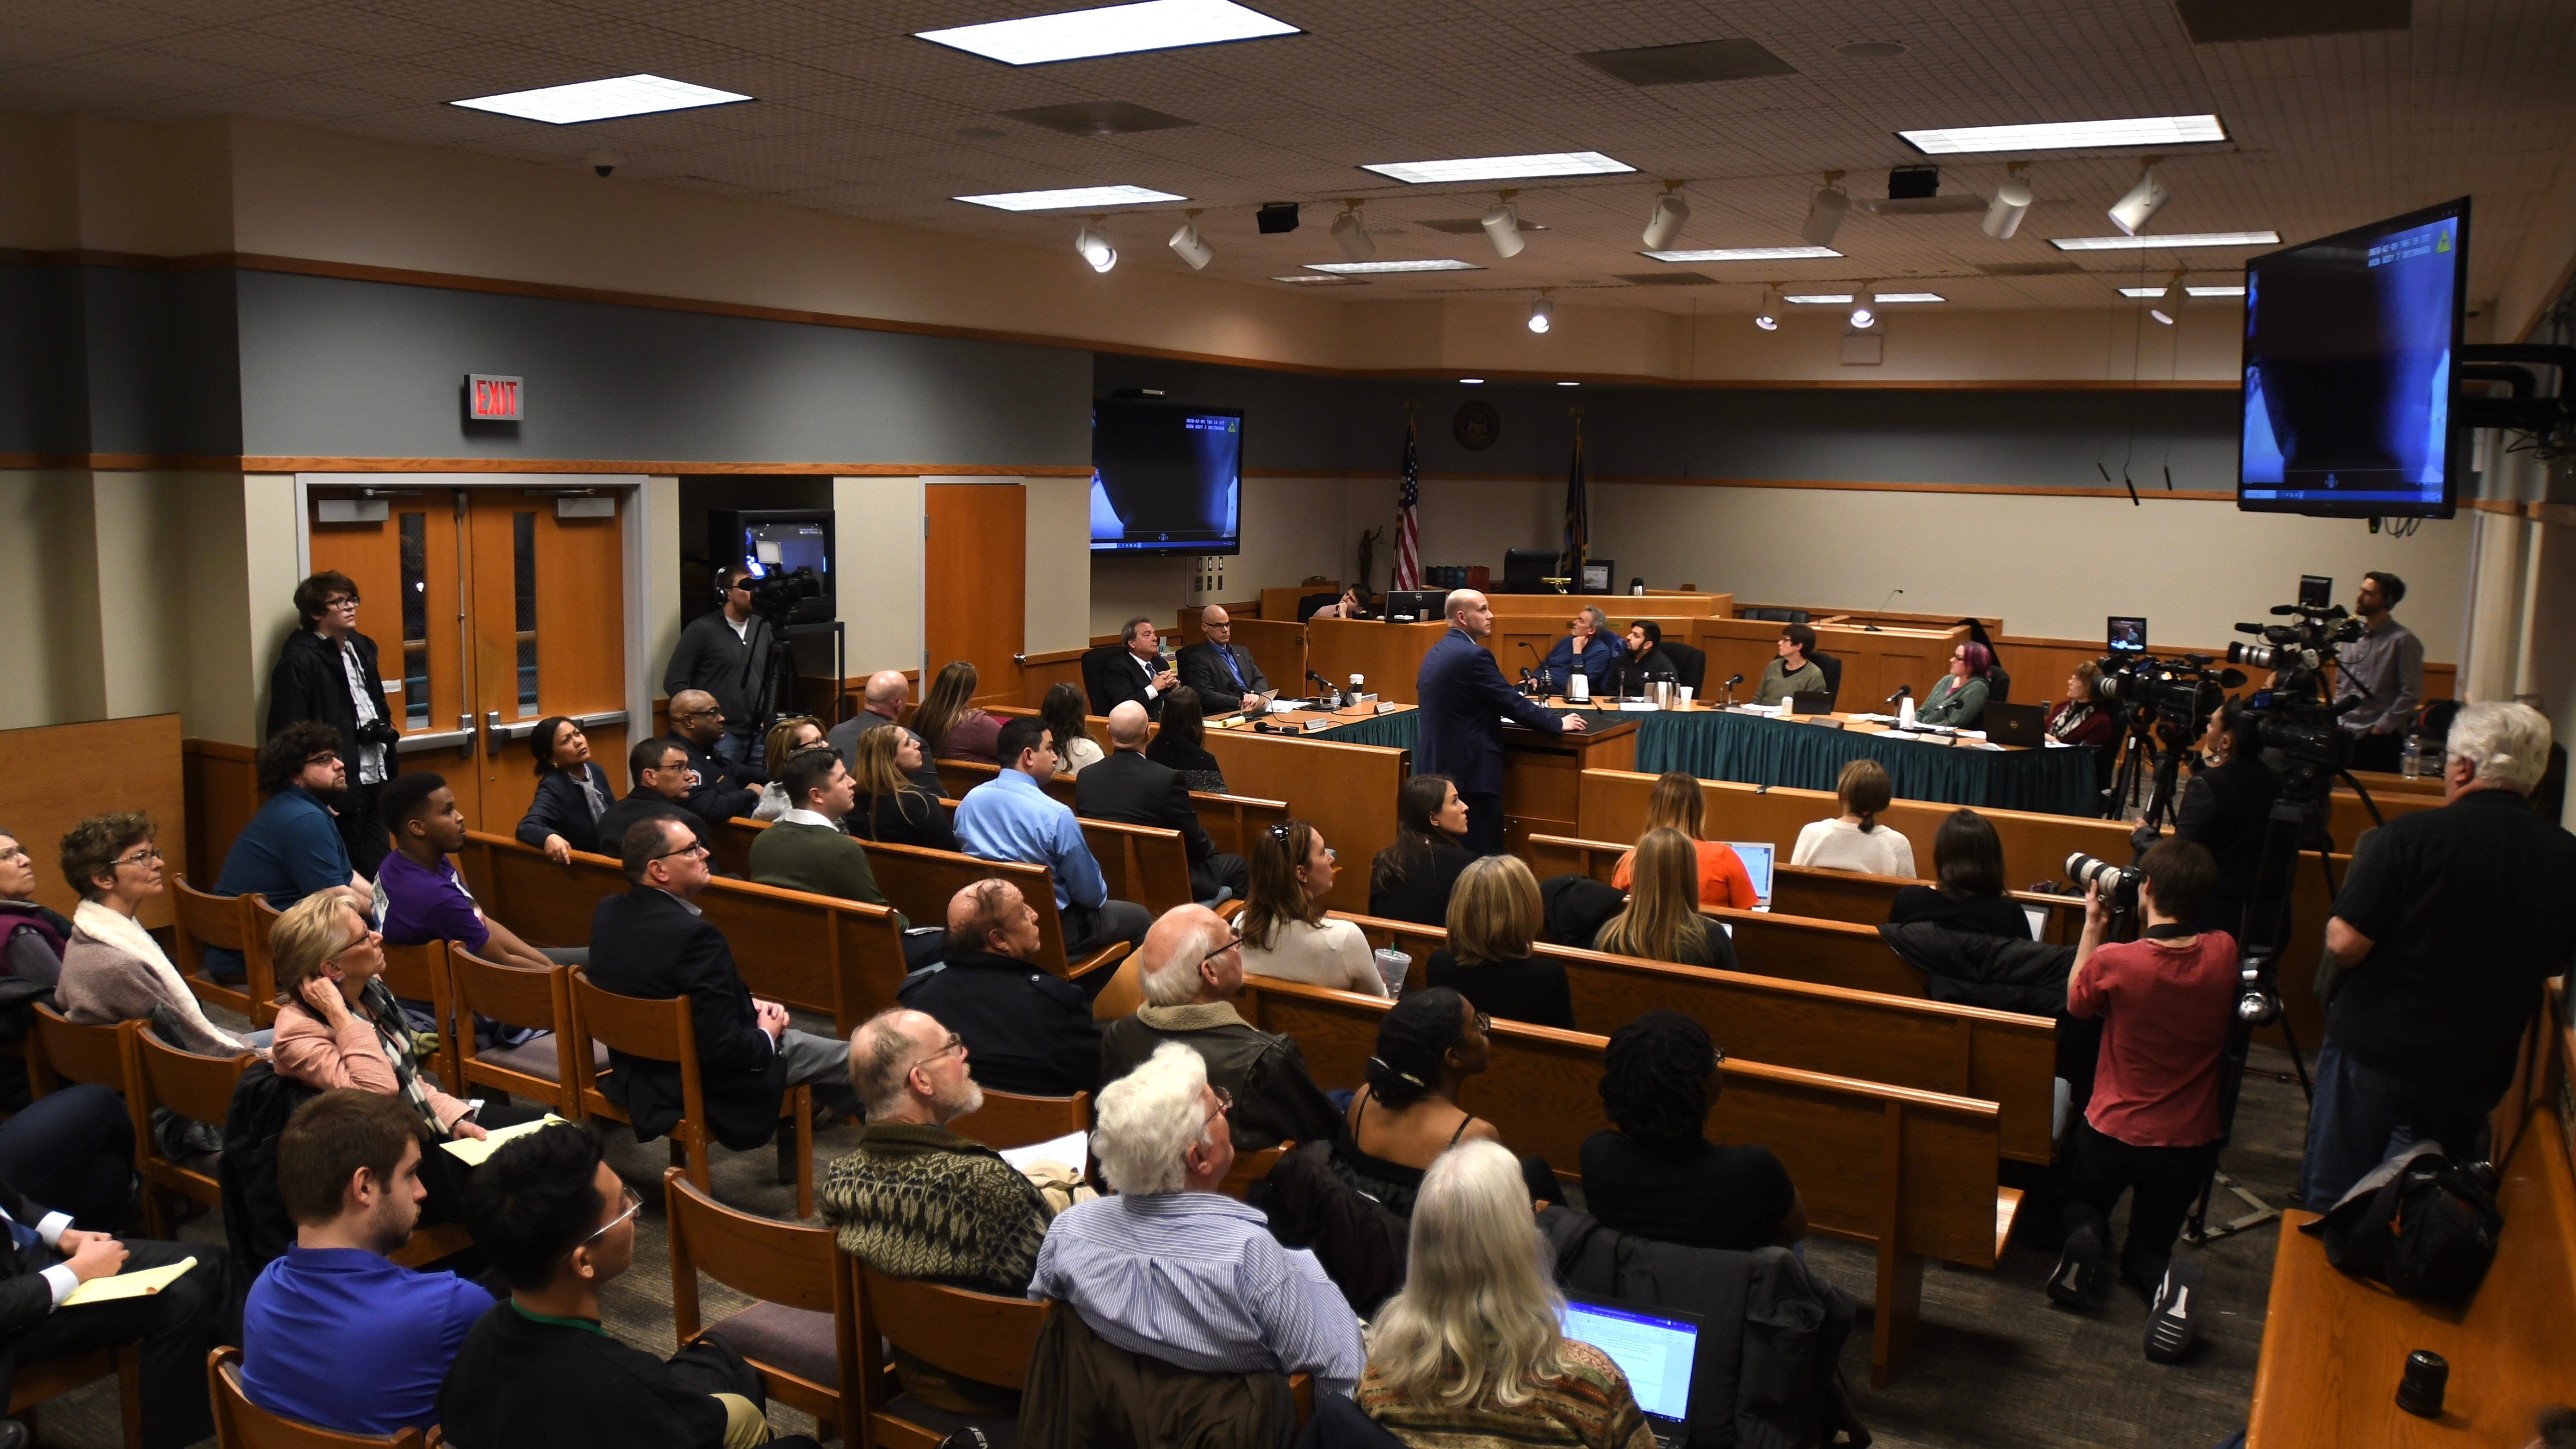 East Lansing police : Insufficient evidence in excessive force inquiry